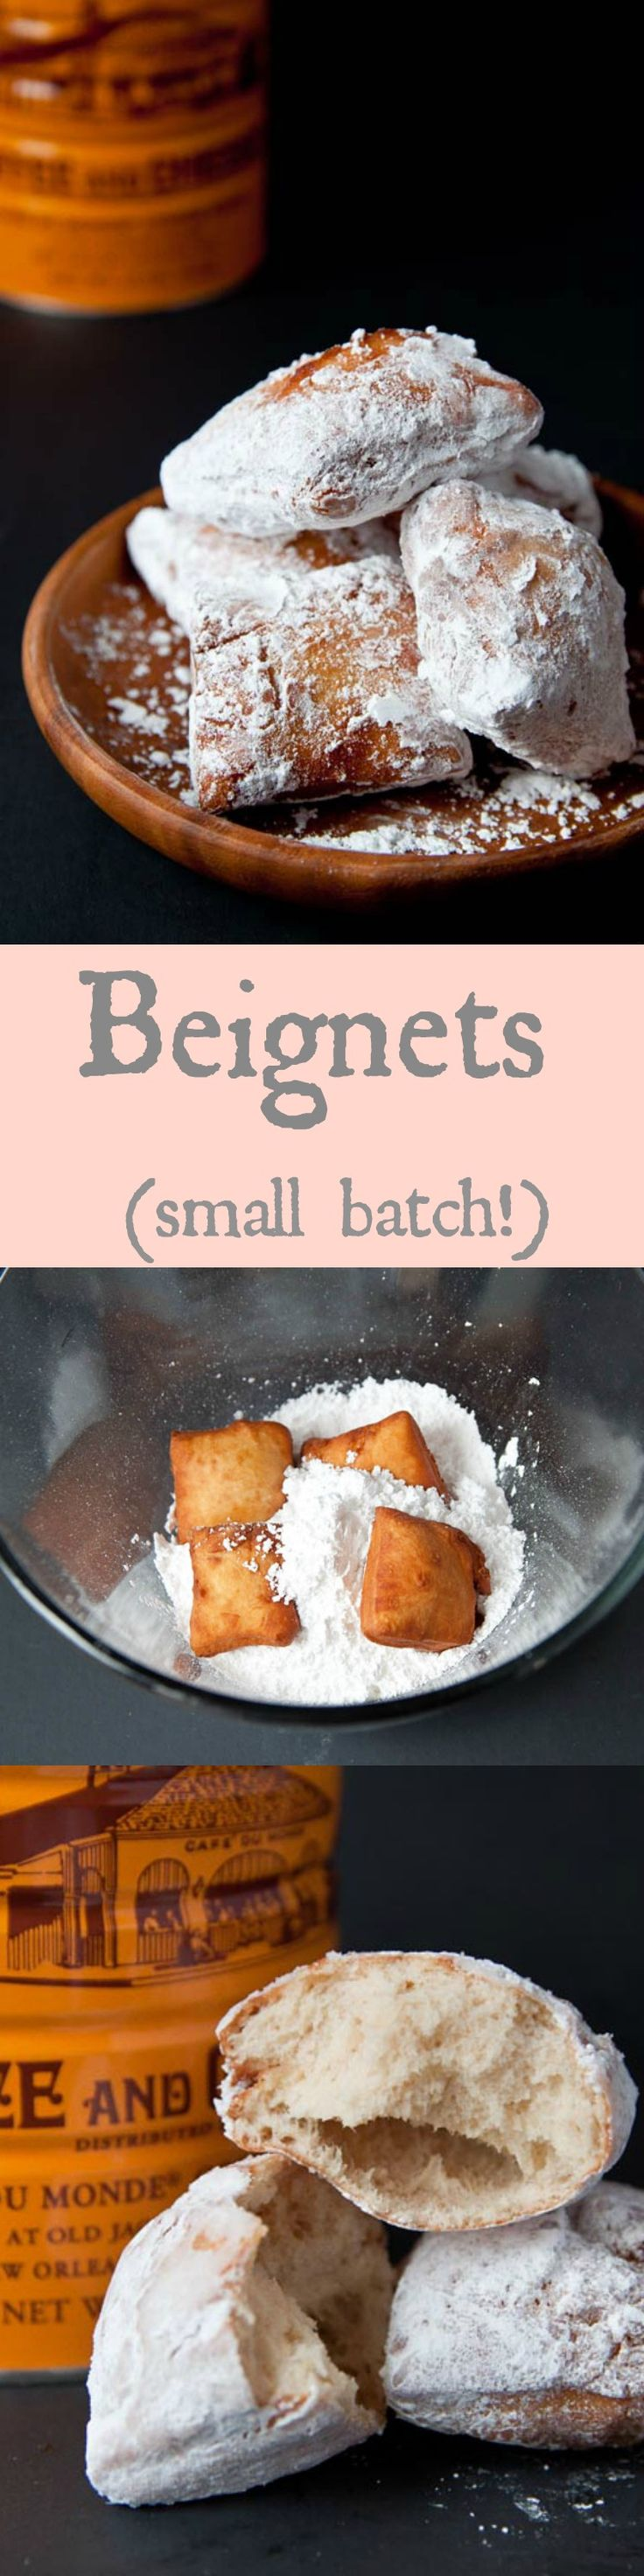 Beignets made from scratch!